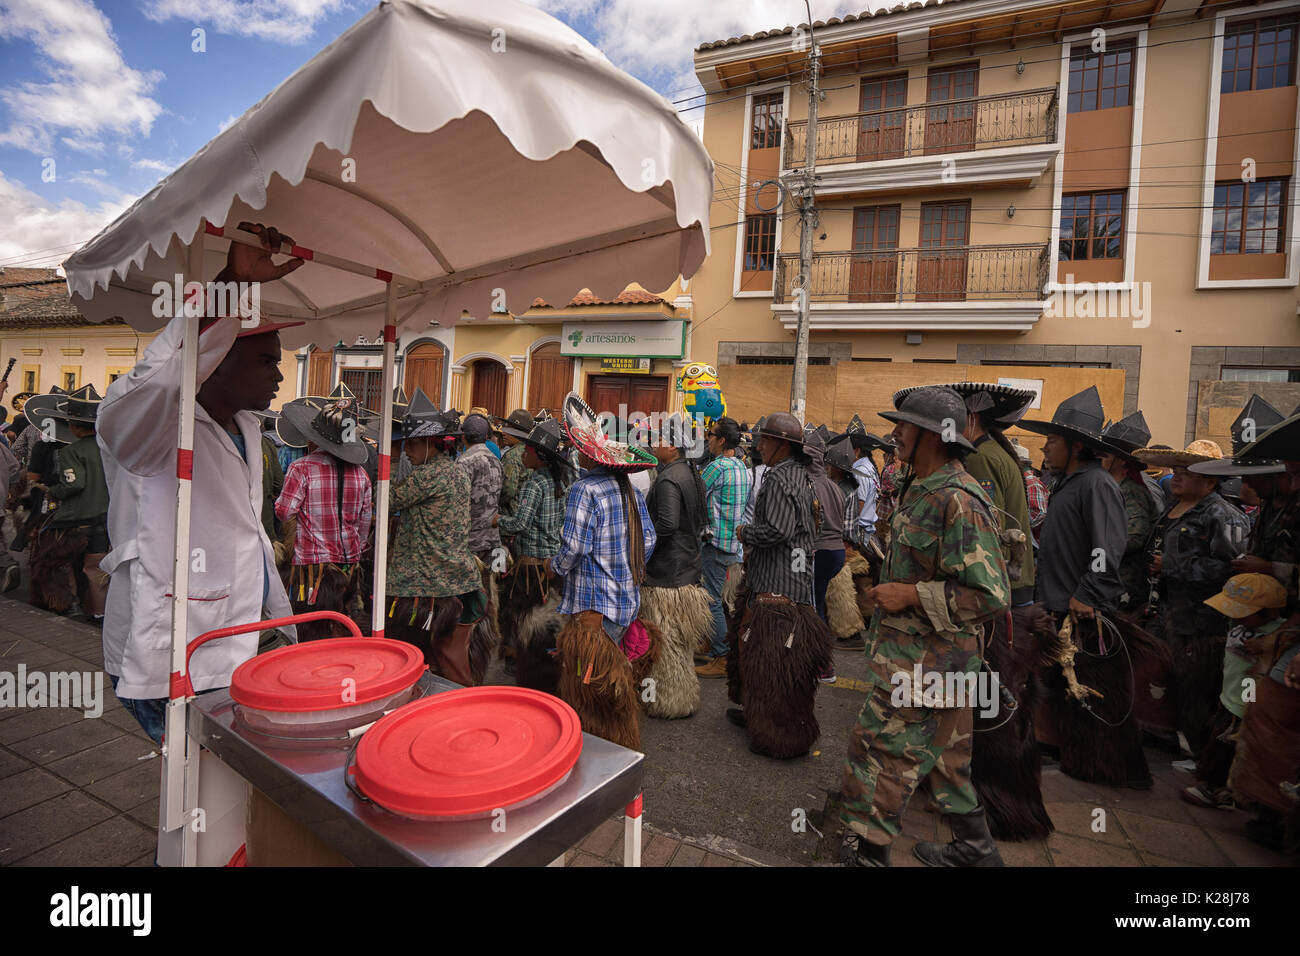 June 25, 2017 Cotacachi, Ecuador: a street food vendor watching the Inti Raymi parade from the sidewalk - Stock Image